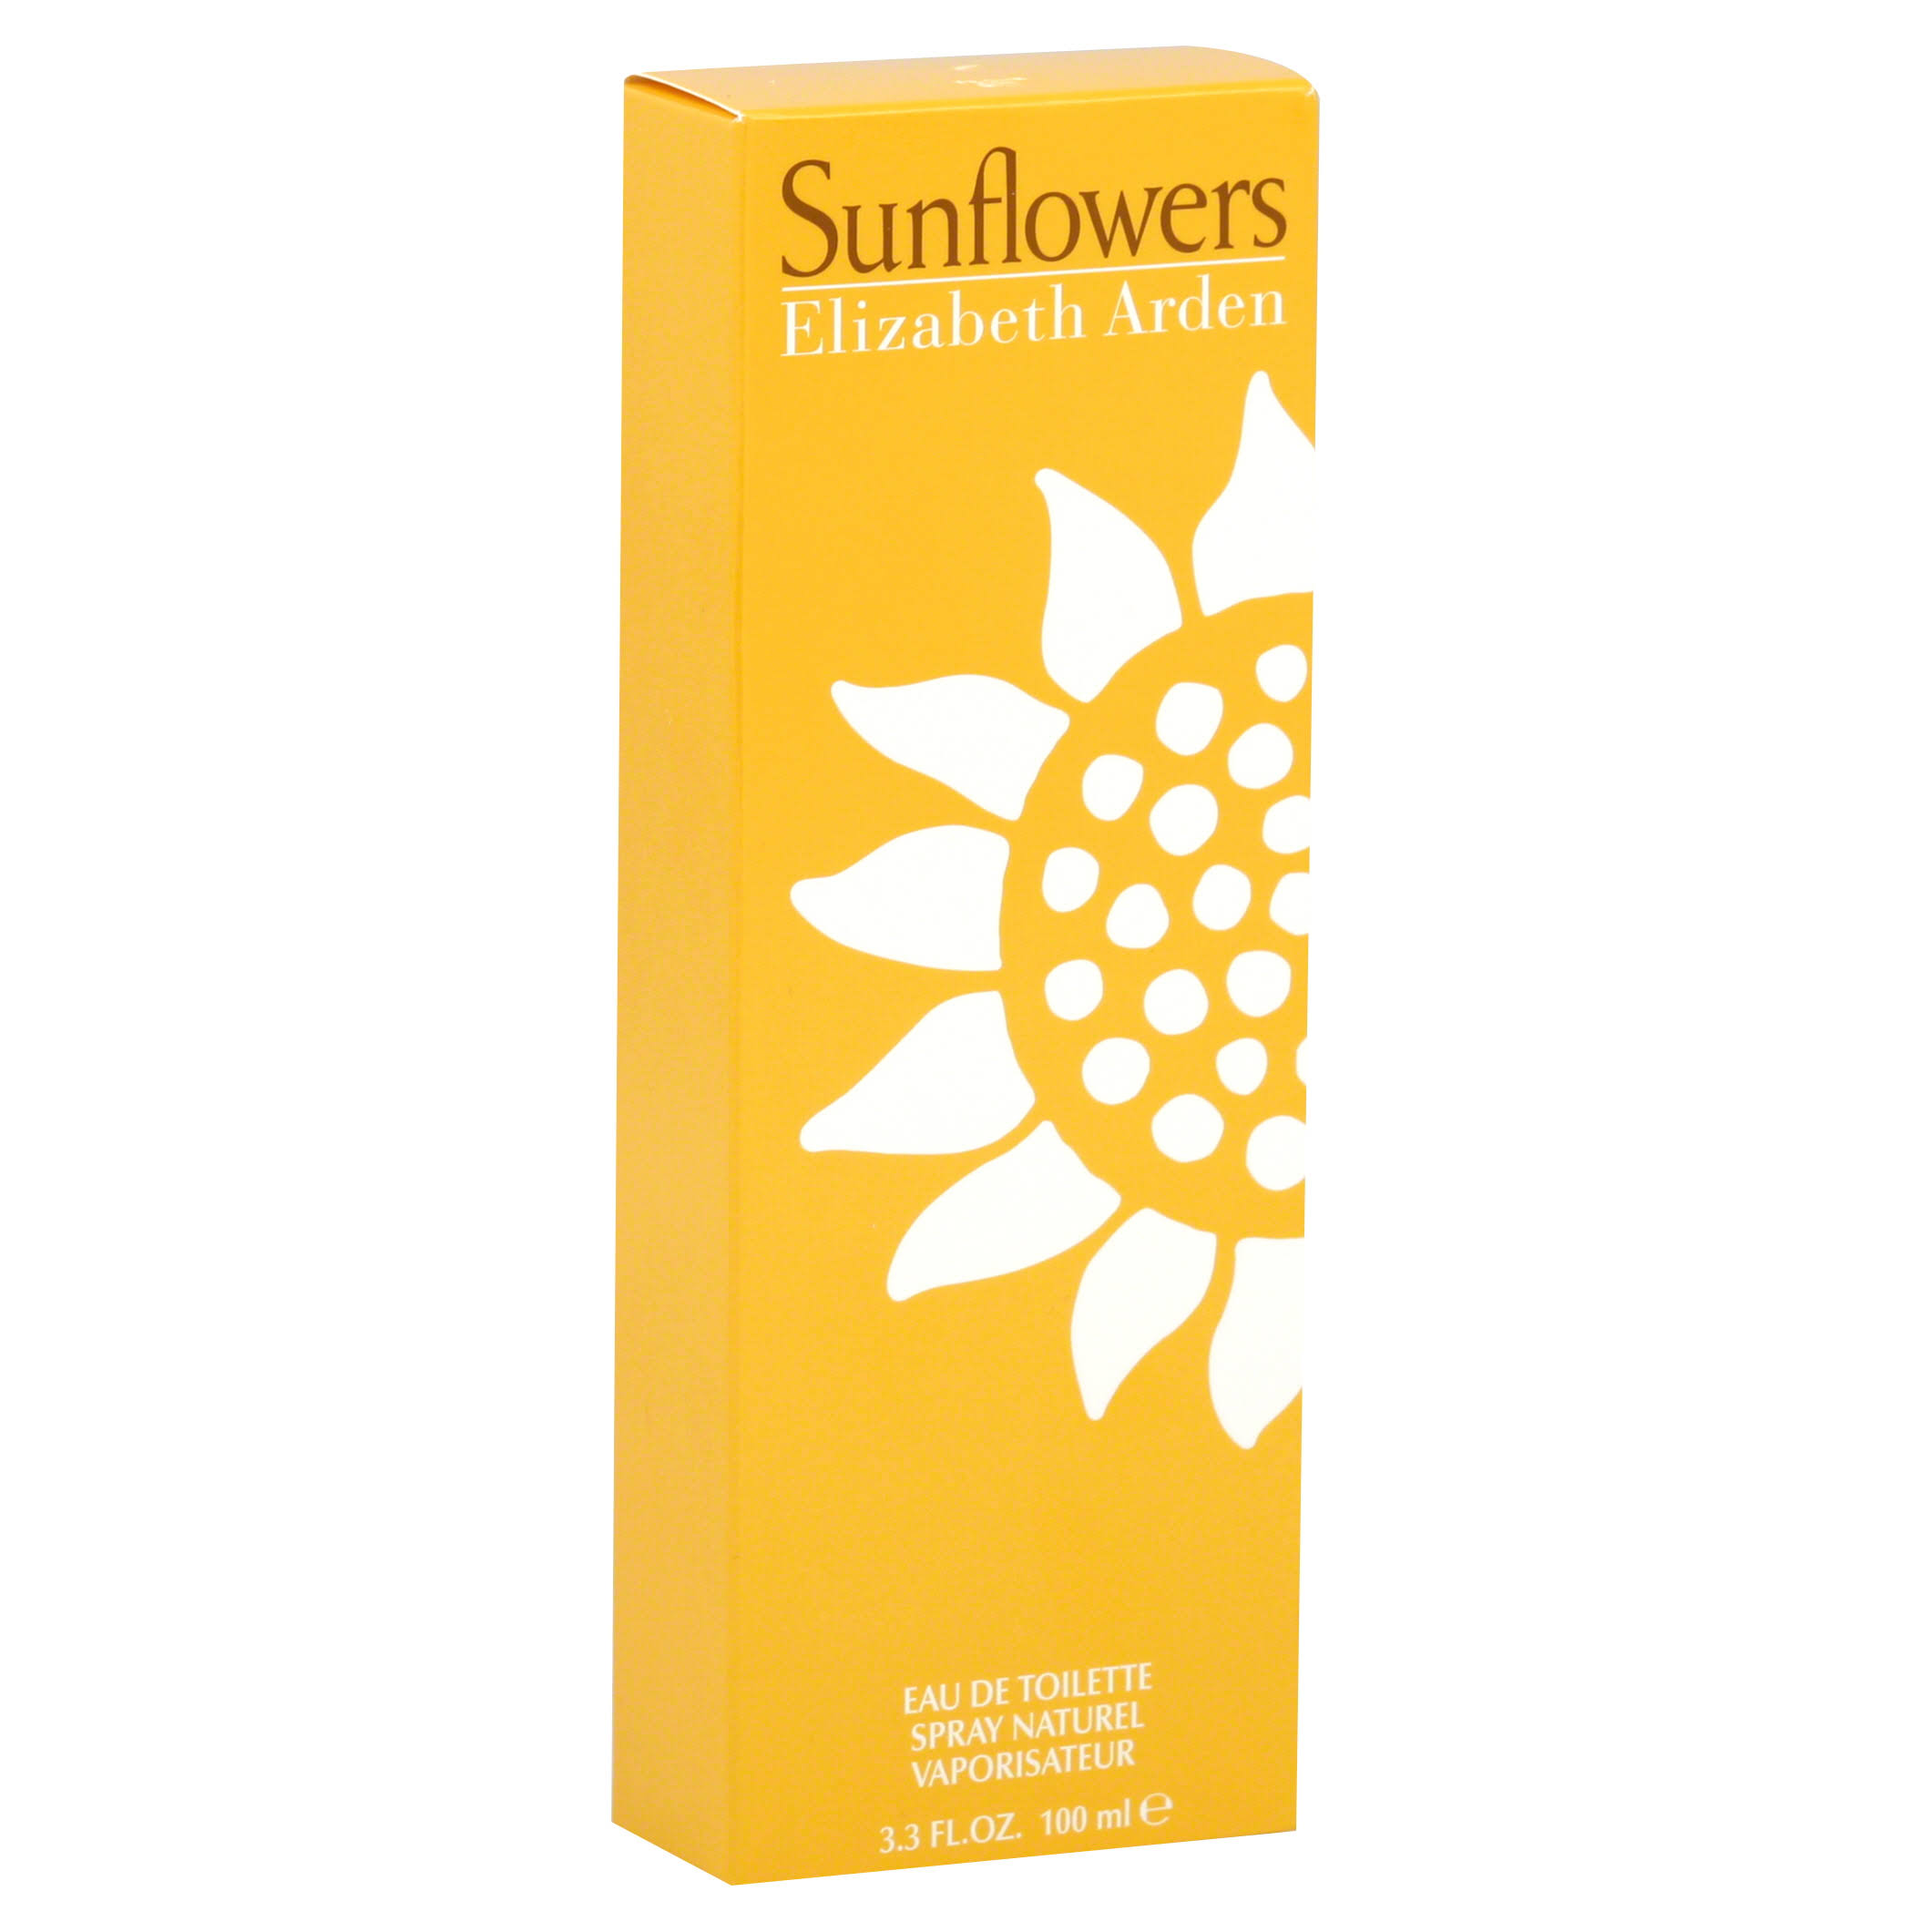 Elizabeth Arden Sunflowers Eau de Toilette Spray - 100ml